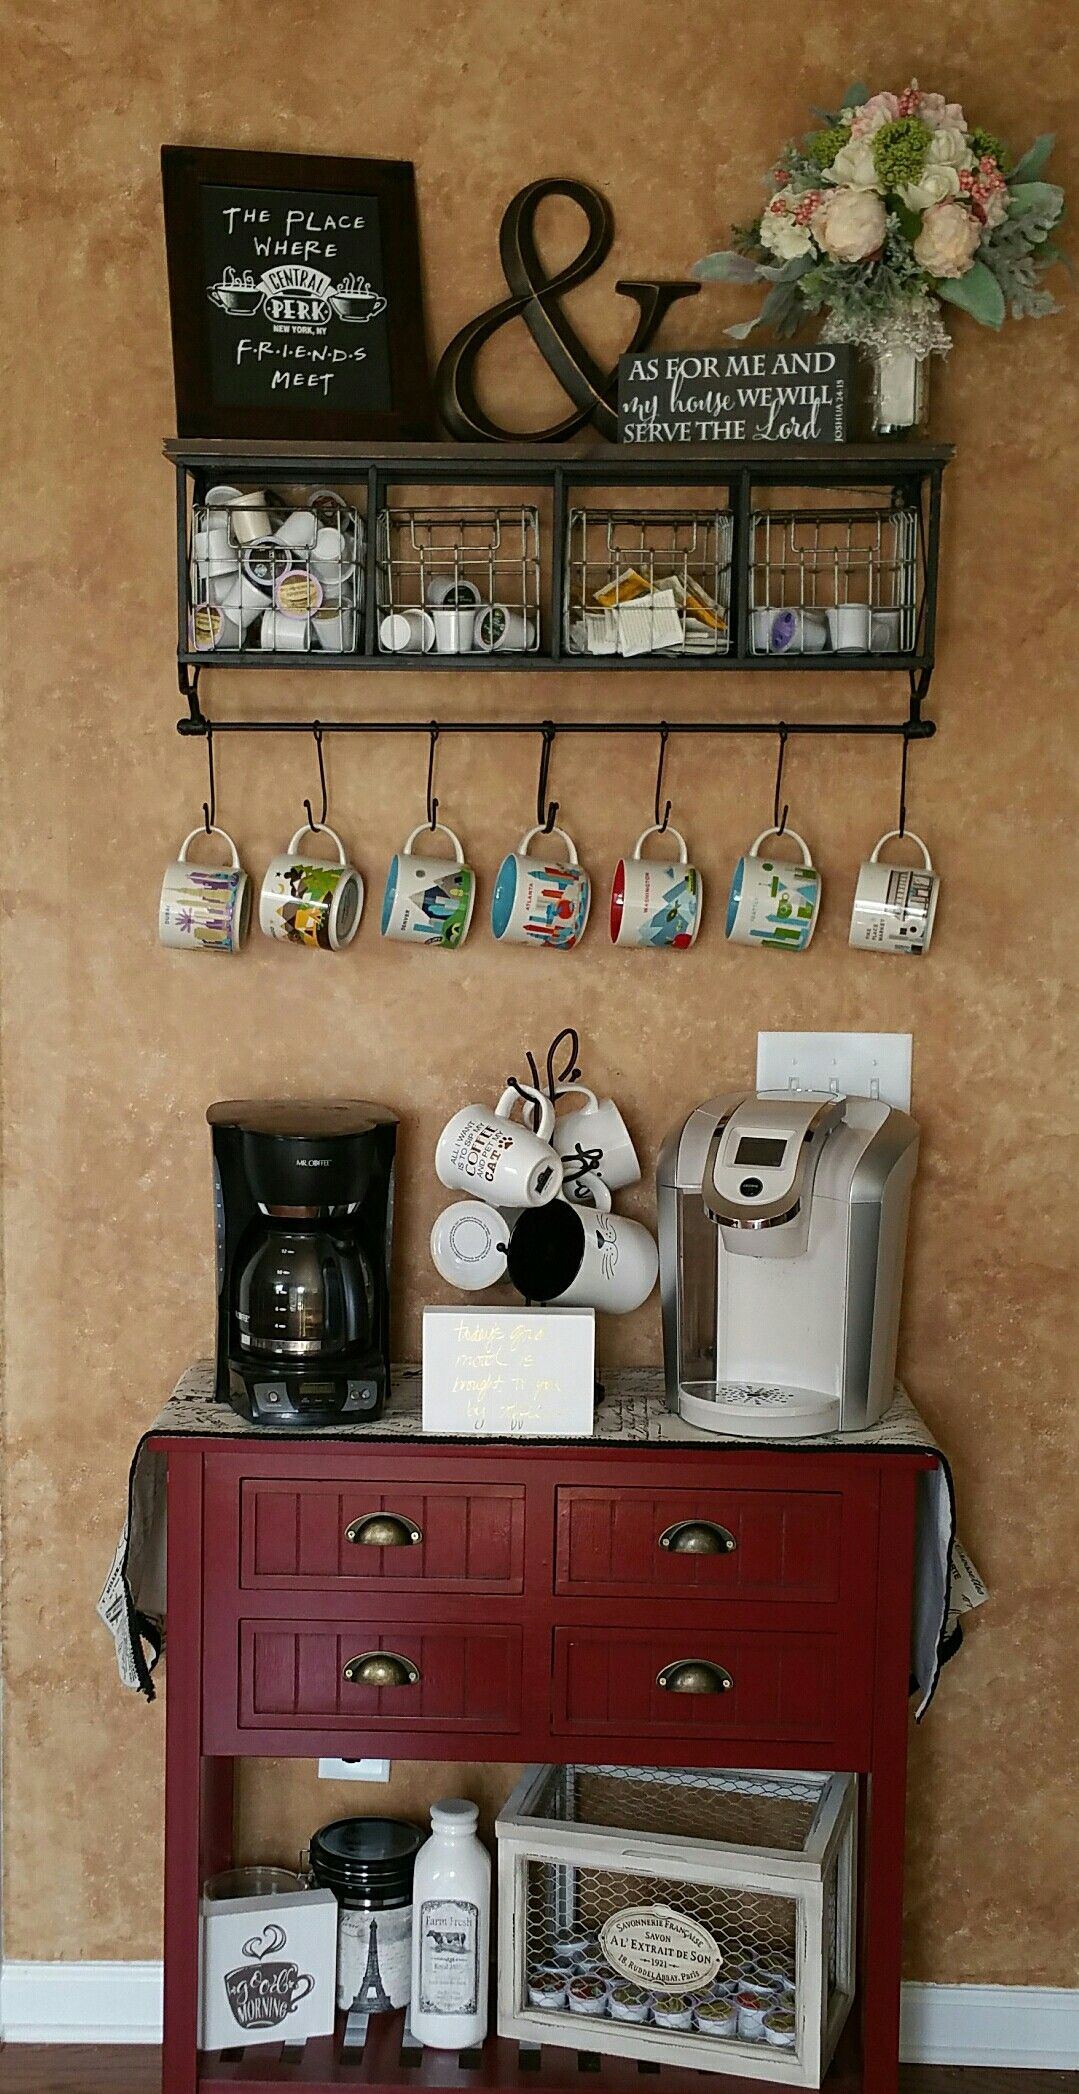 Love Our Upgraded Our Coffee Bar Table Kirklands Wall Shelf Hobby Lobby Friends Art Etsy Flowers Michae Coffee Bars In Kitchen Coffee Bar Home Coffee Bar